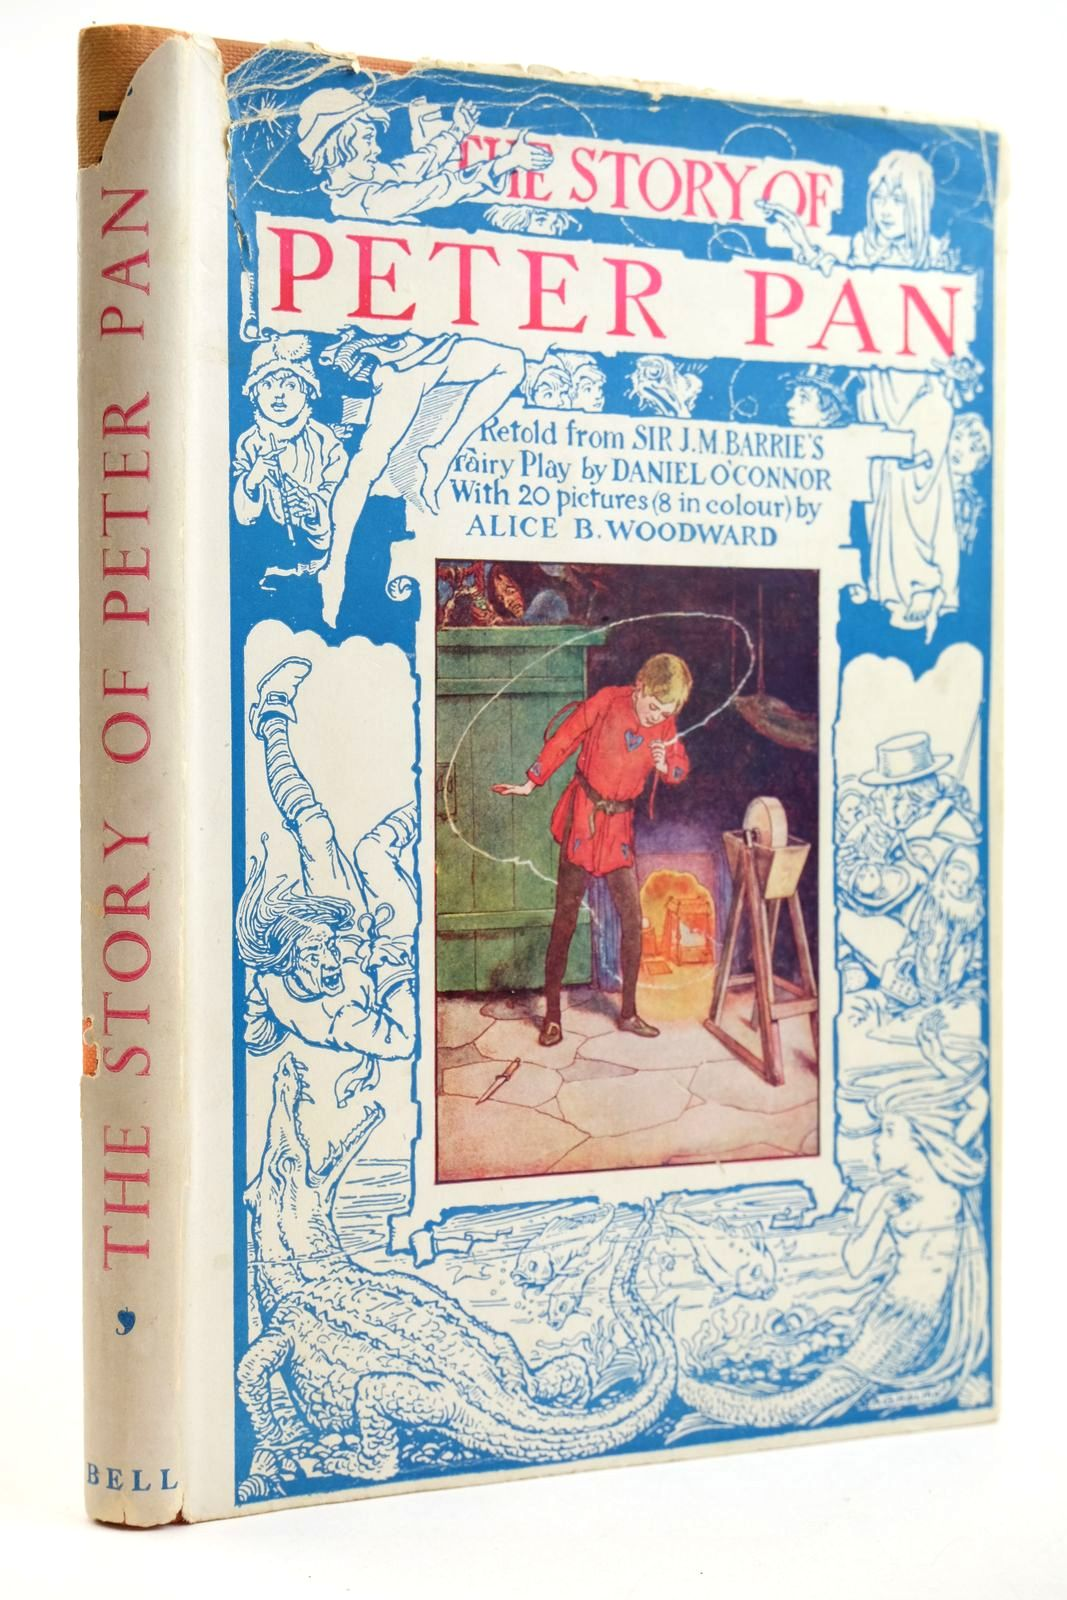 Photo of THE STORY OF PETER PAN written by Barrie, J.M. O'Connor, Daniel illustrated by Woodward, Alice B. published by G. Bell & Sons Ltd. (STOCK CODE: 2132405)  for sale by Stella & Rose's Books